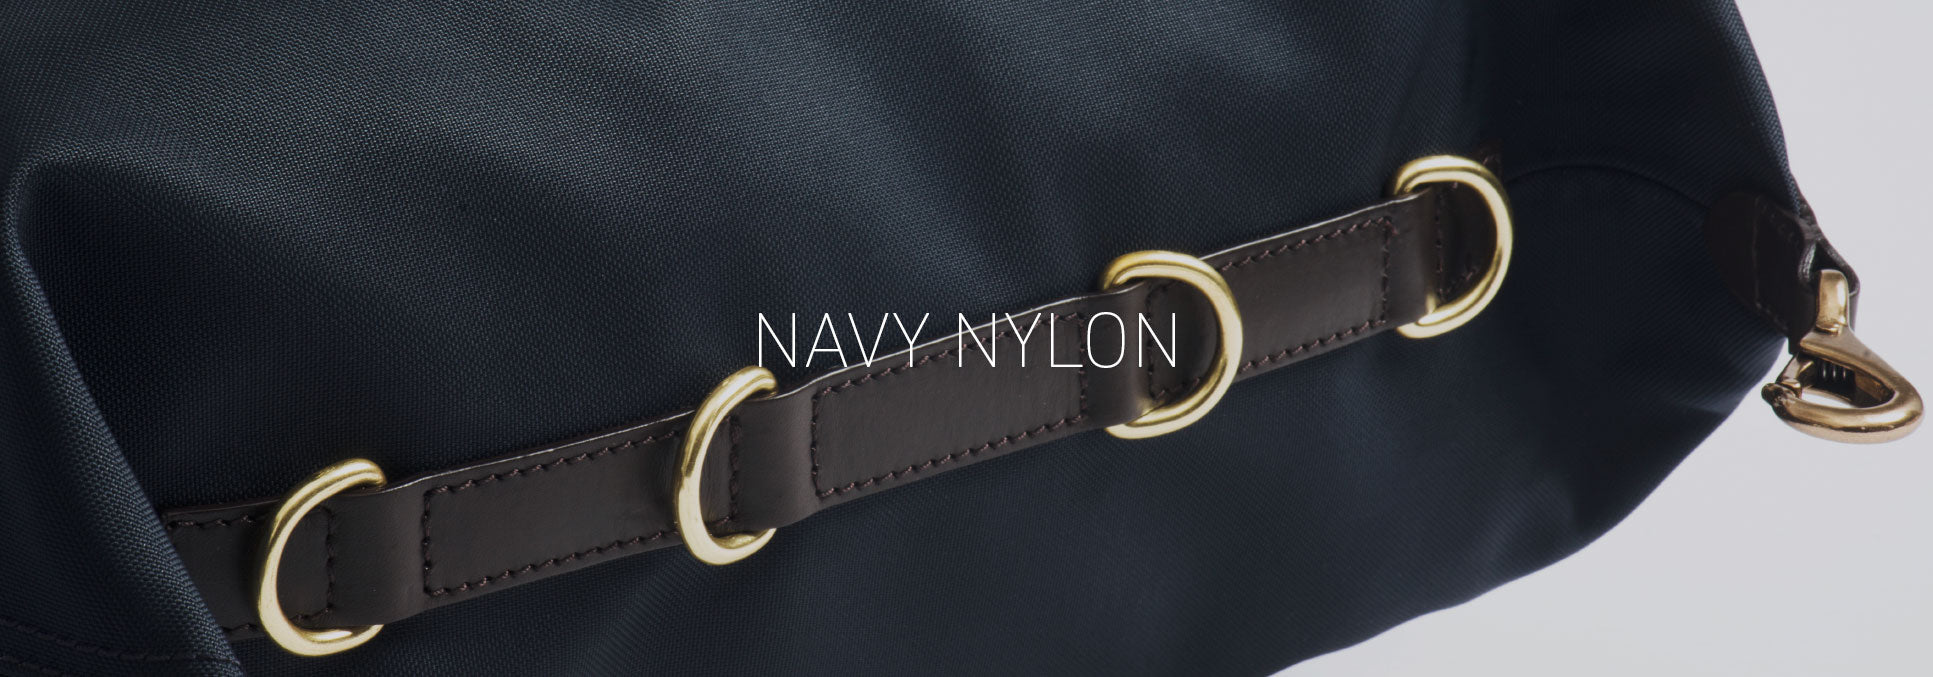 navy nylon collection